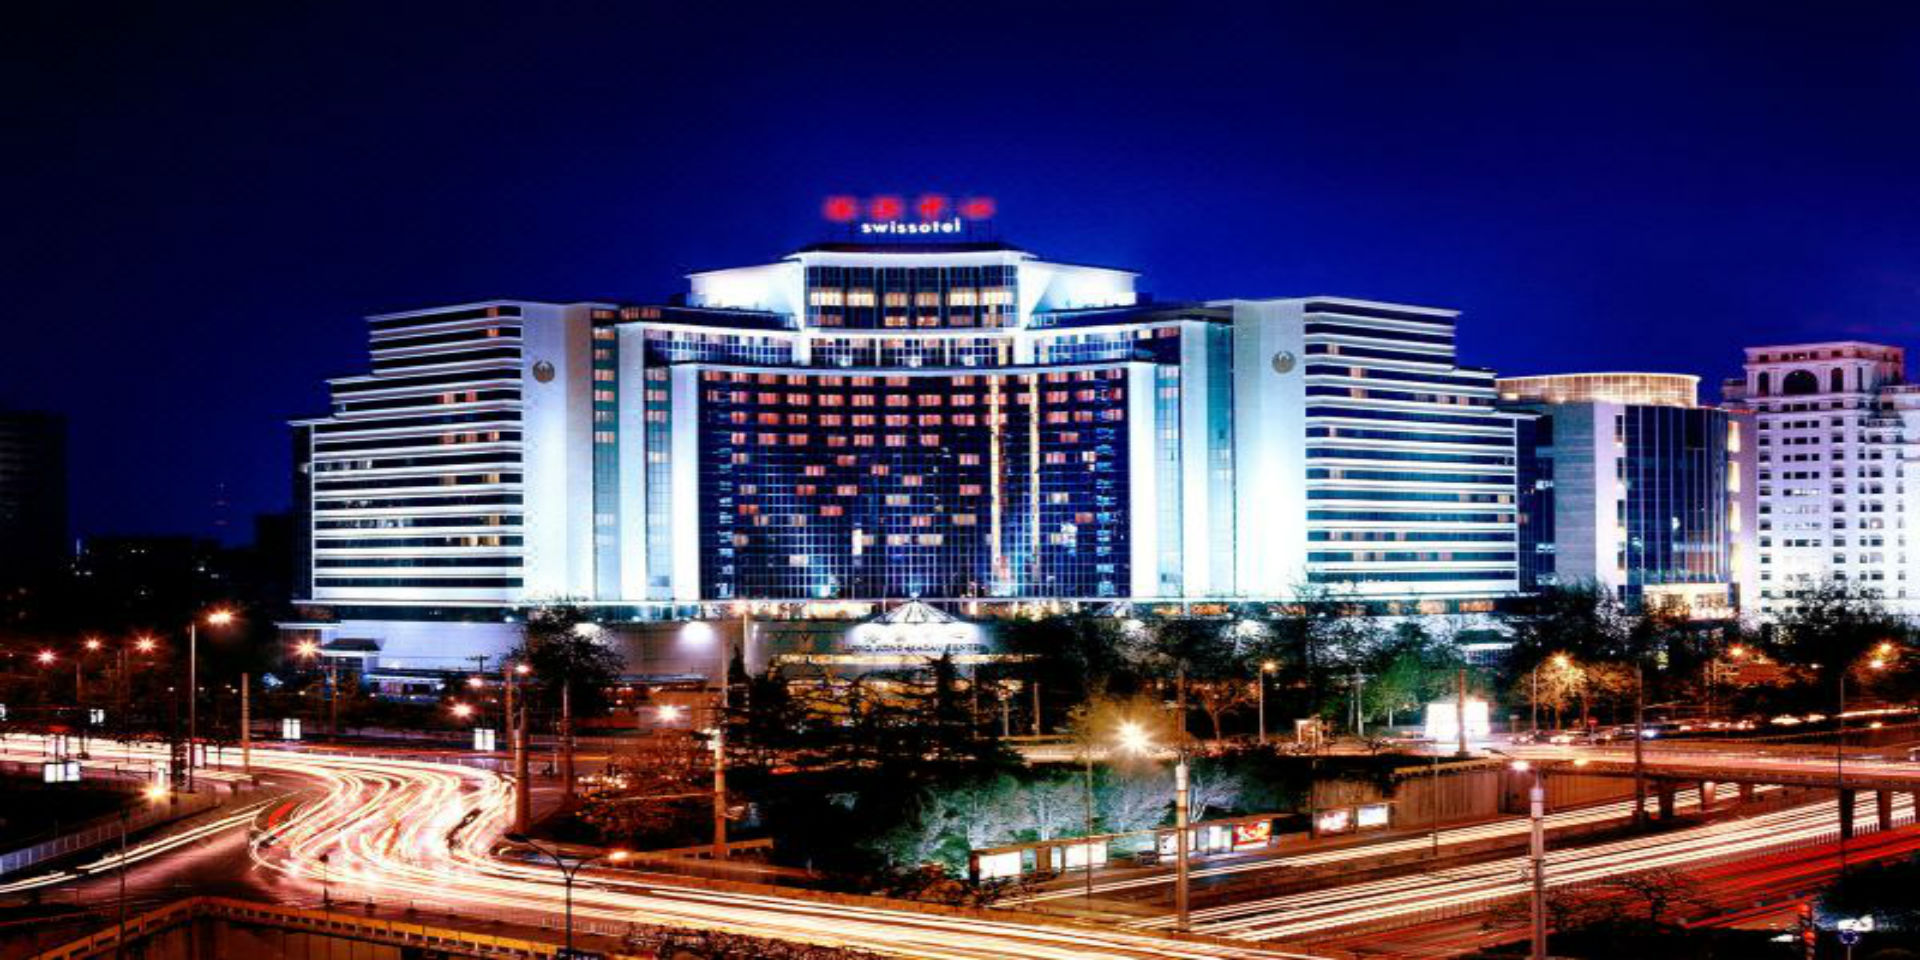 Swissotel and Movenpick Square Off in Asia